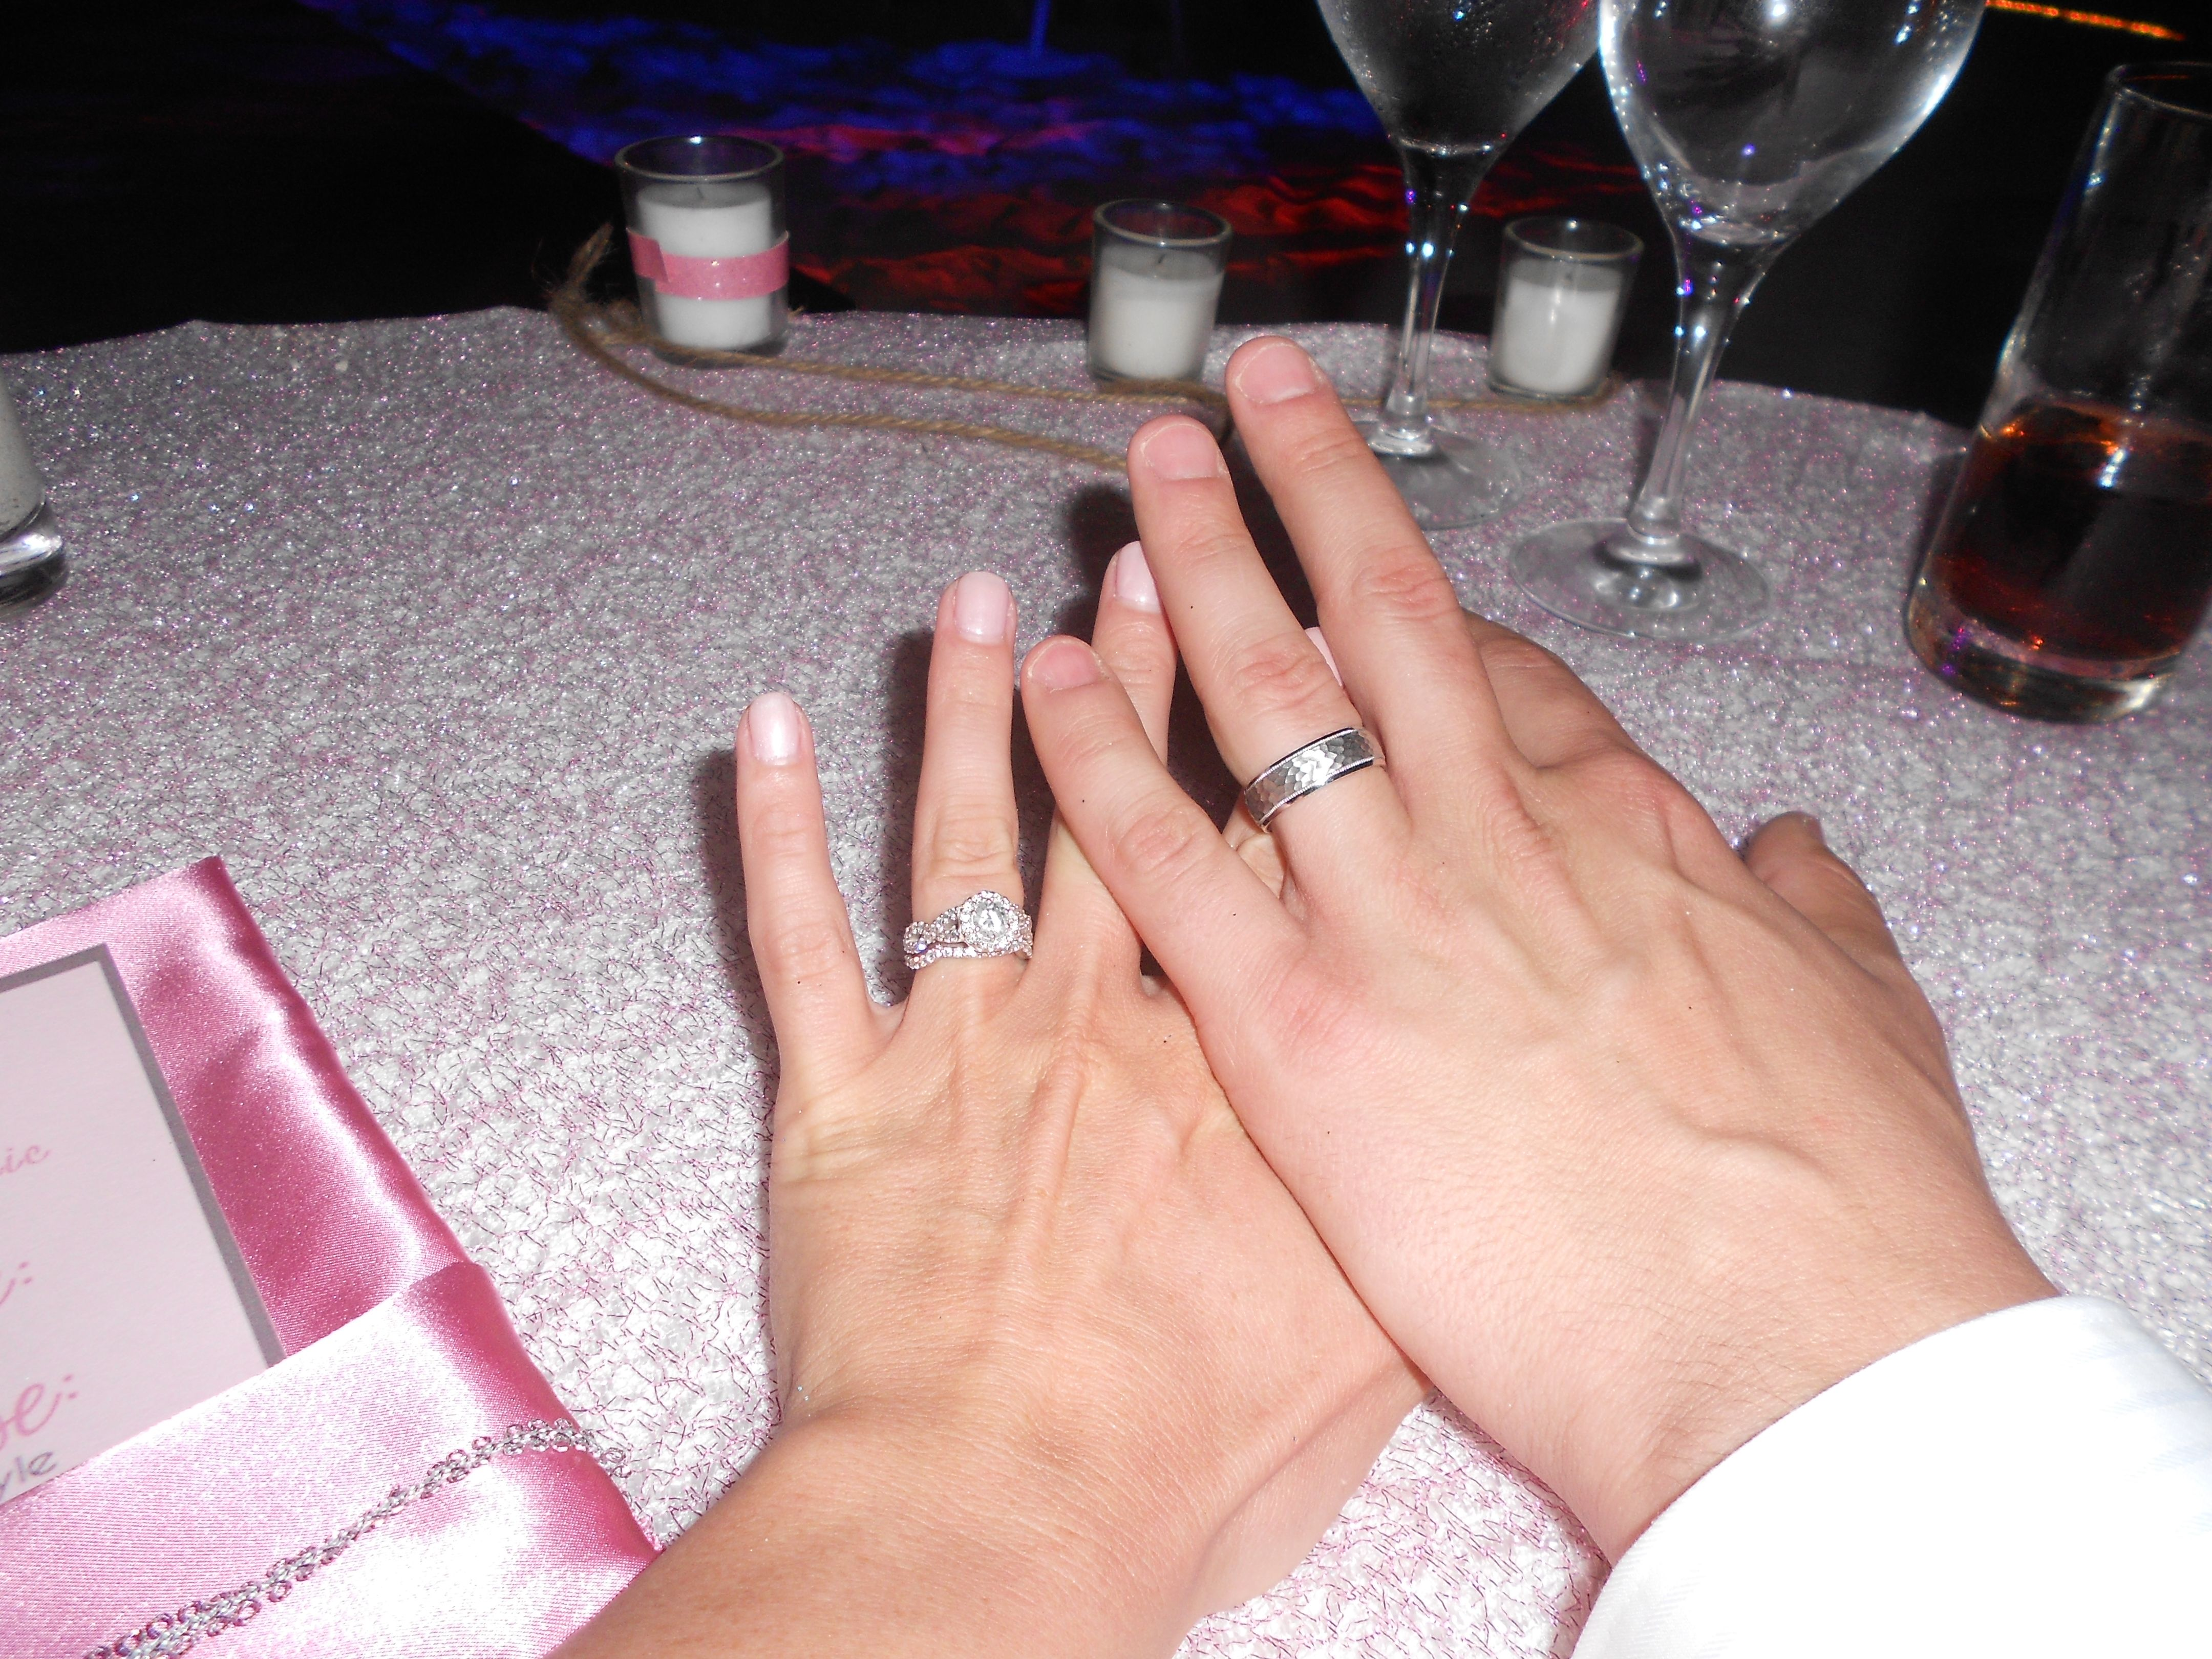 Our rings at our wedding - Symbols of love